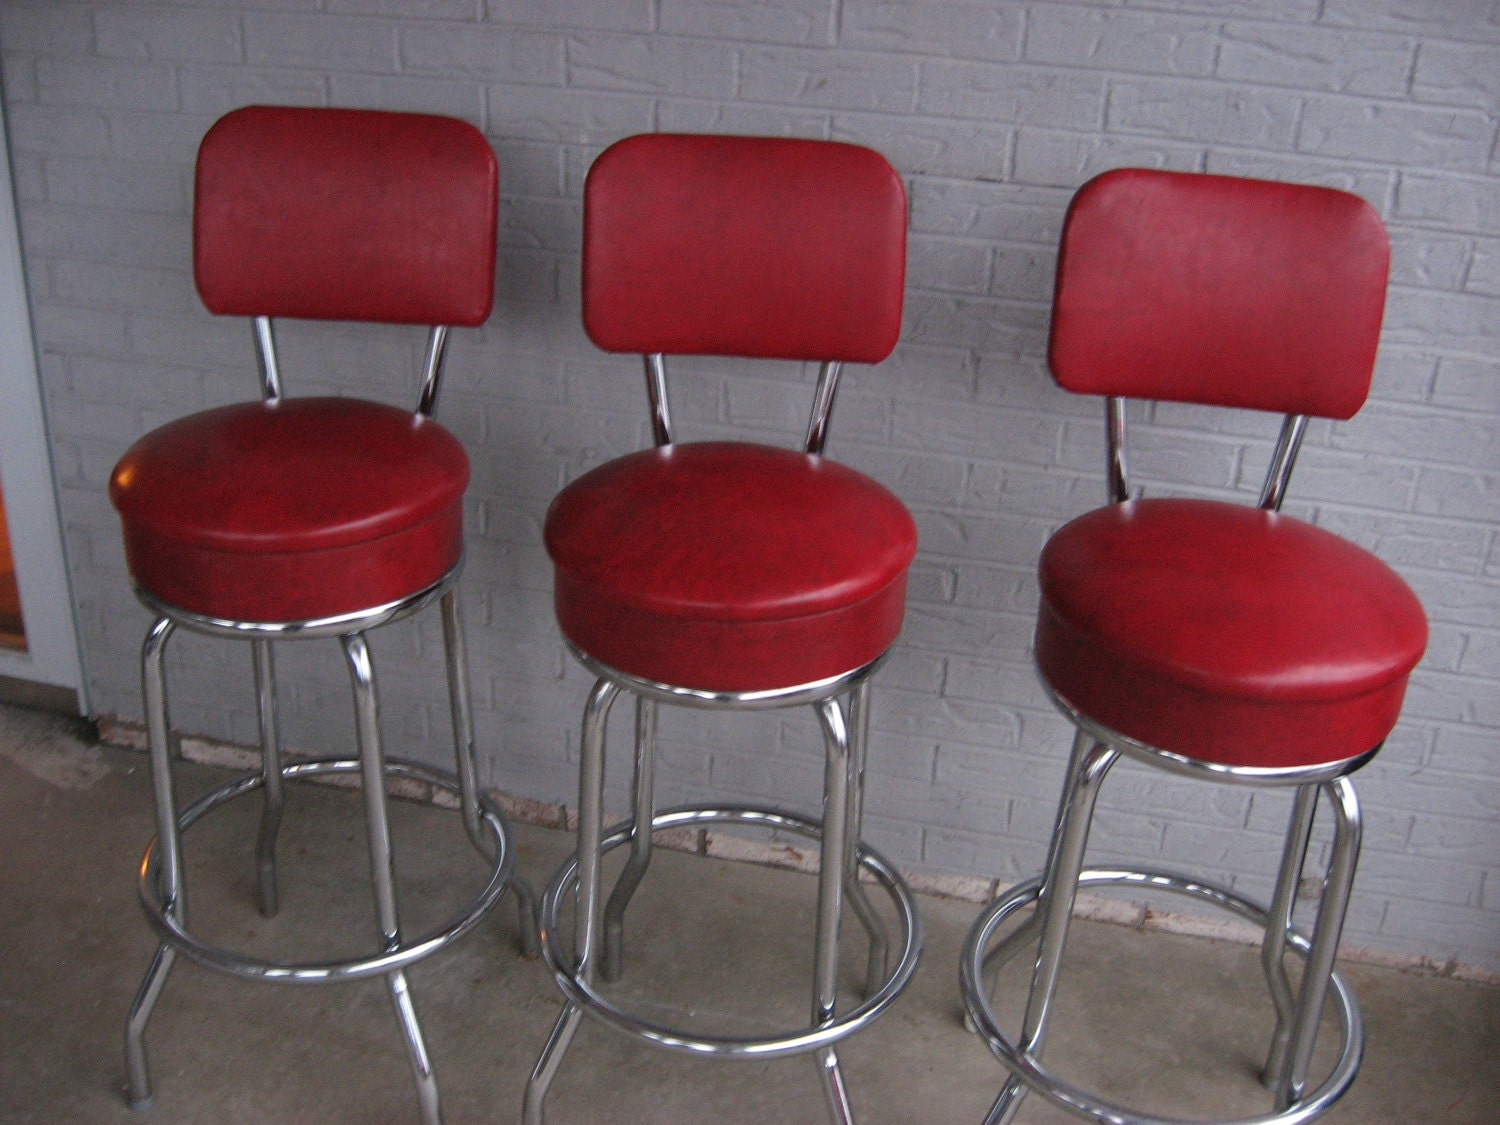 Three 3 vintage retro 1950s 1960s Red Bar Stools by  : ilfullxfull292181576 from www.etsy.com size 1500 x 1125 jpeg 328kB